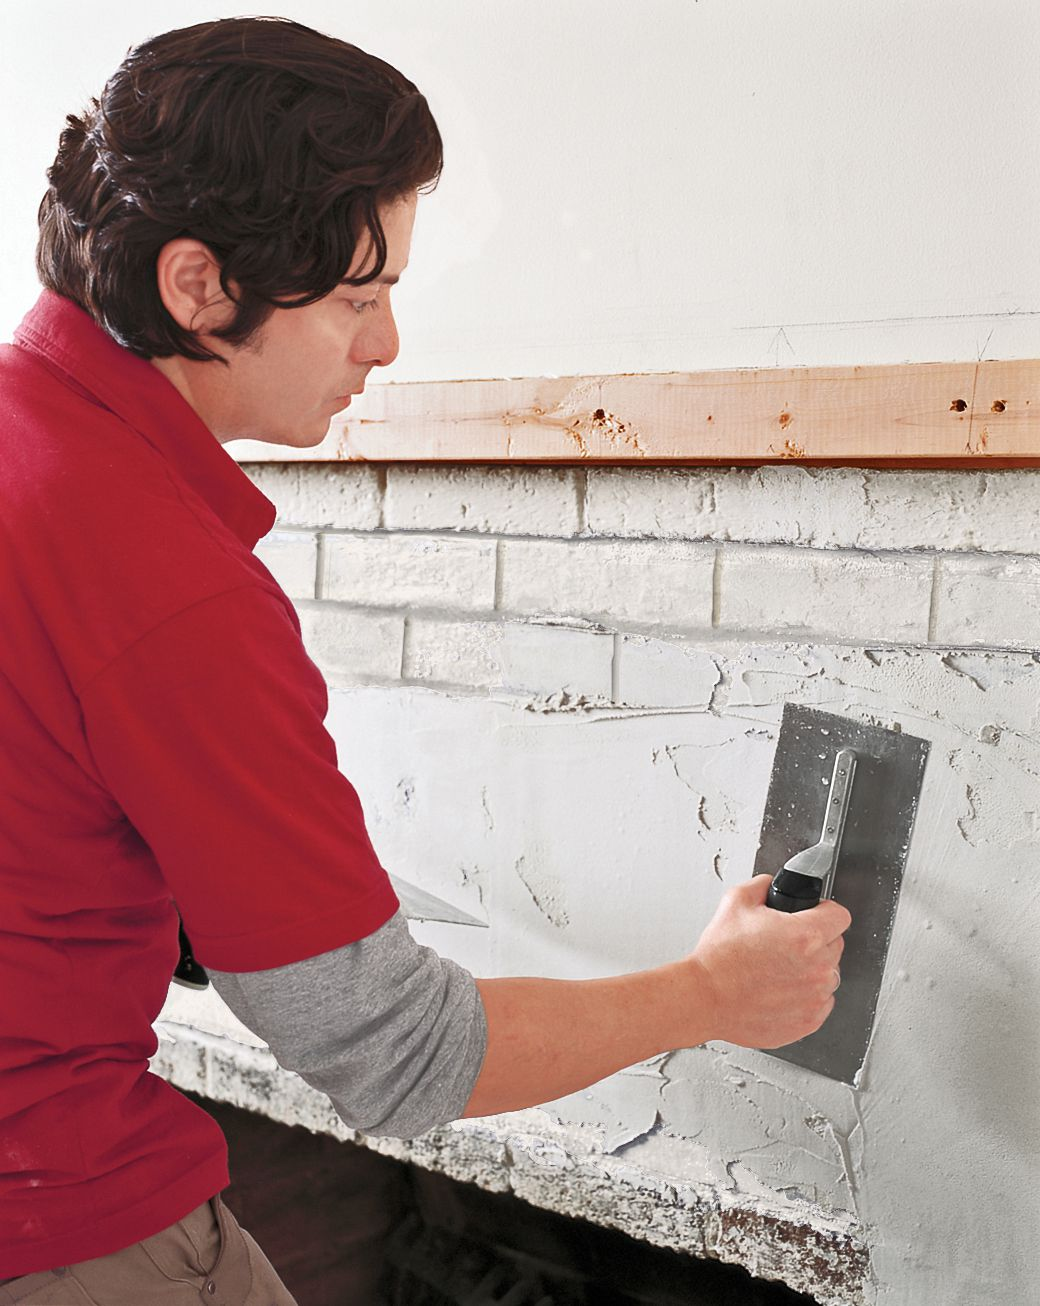 Man Tiles Over Bricks Of Fireplace With Finishing Trowel